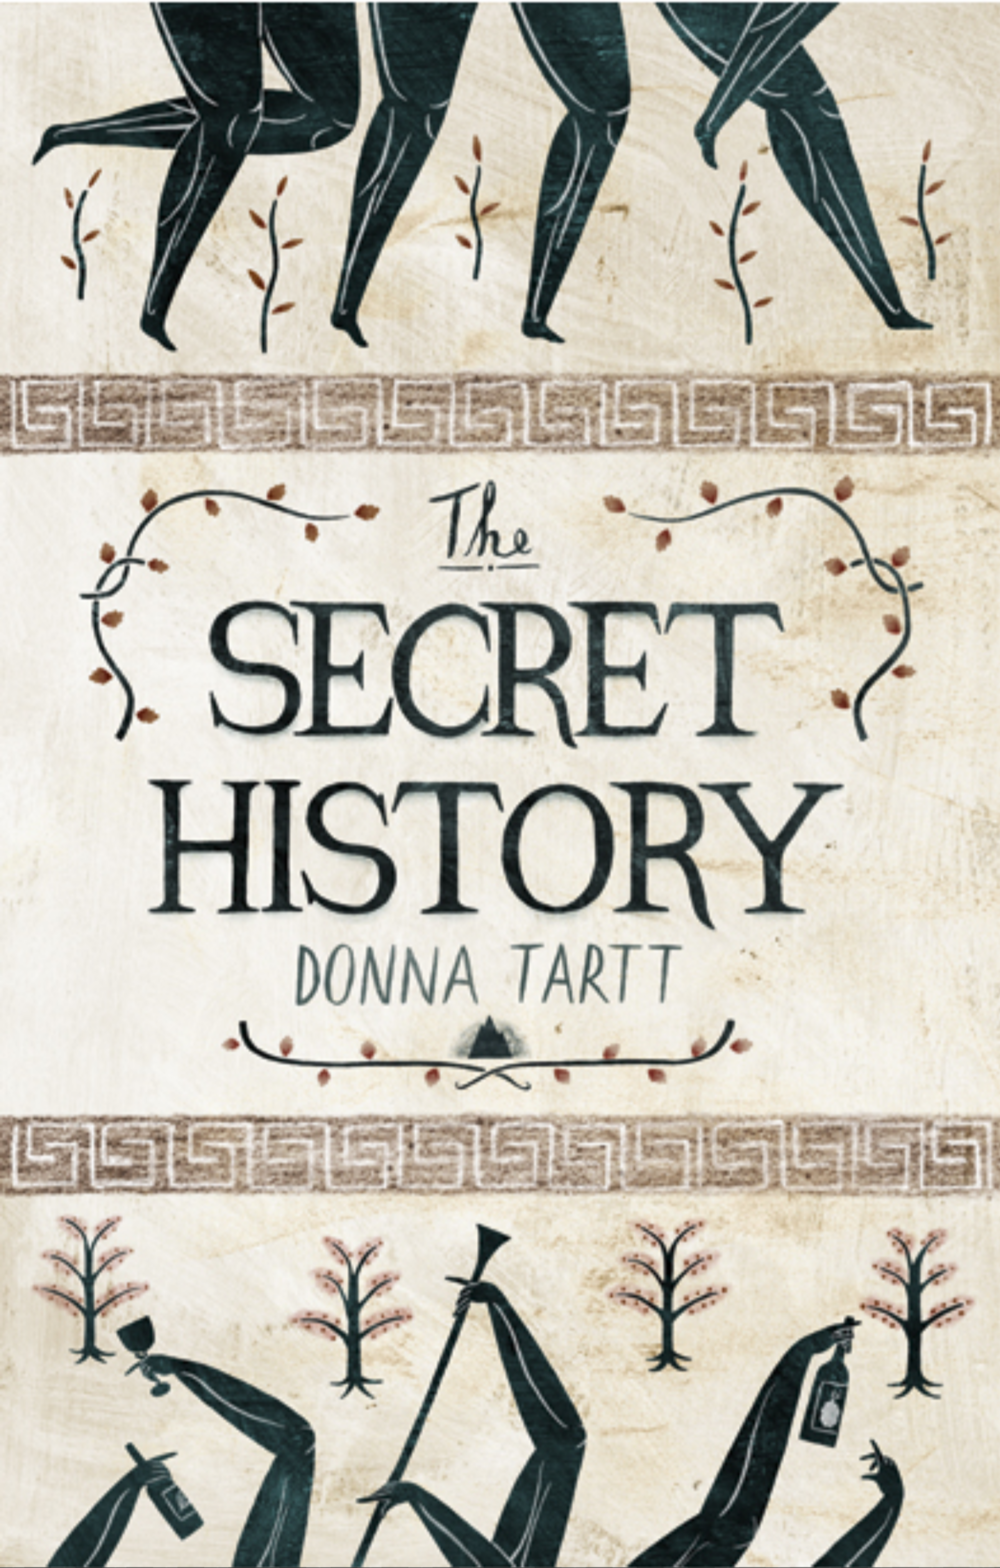 the secret history by donna tartt Published by Alfred A. Knopf, september 1922 Genres: adult Fiction NoveL, Thriller, suspense, mystery Pages:544 Format:Paperback Source:Purchased Pacing: {4/5}